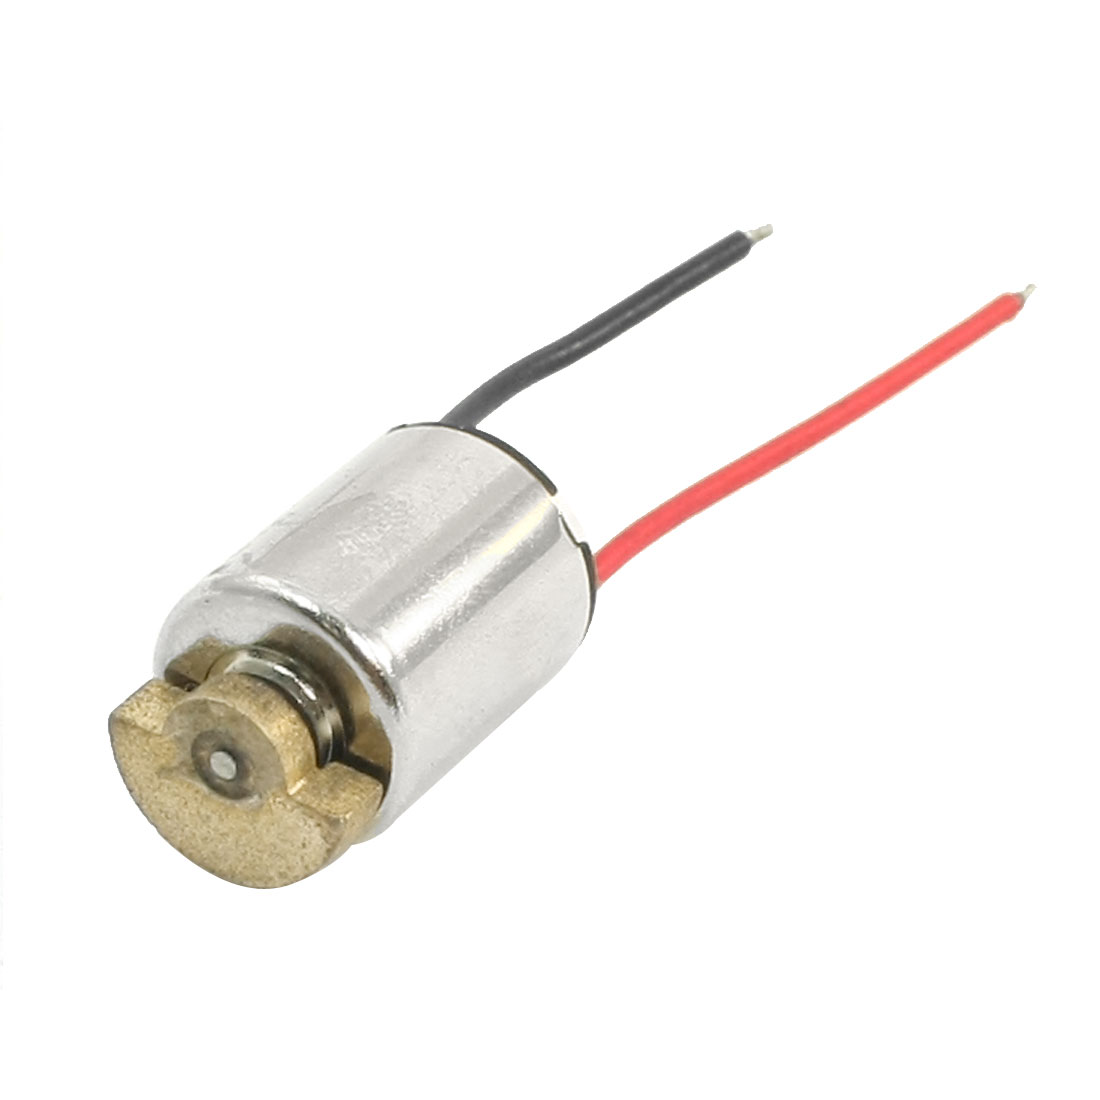 DC-3V-1500RPM-10mmx13mm-Micro-Coreless-Vibrating-Motor-for-Plane-Model